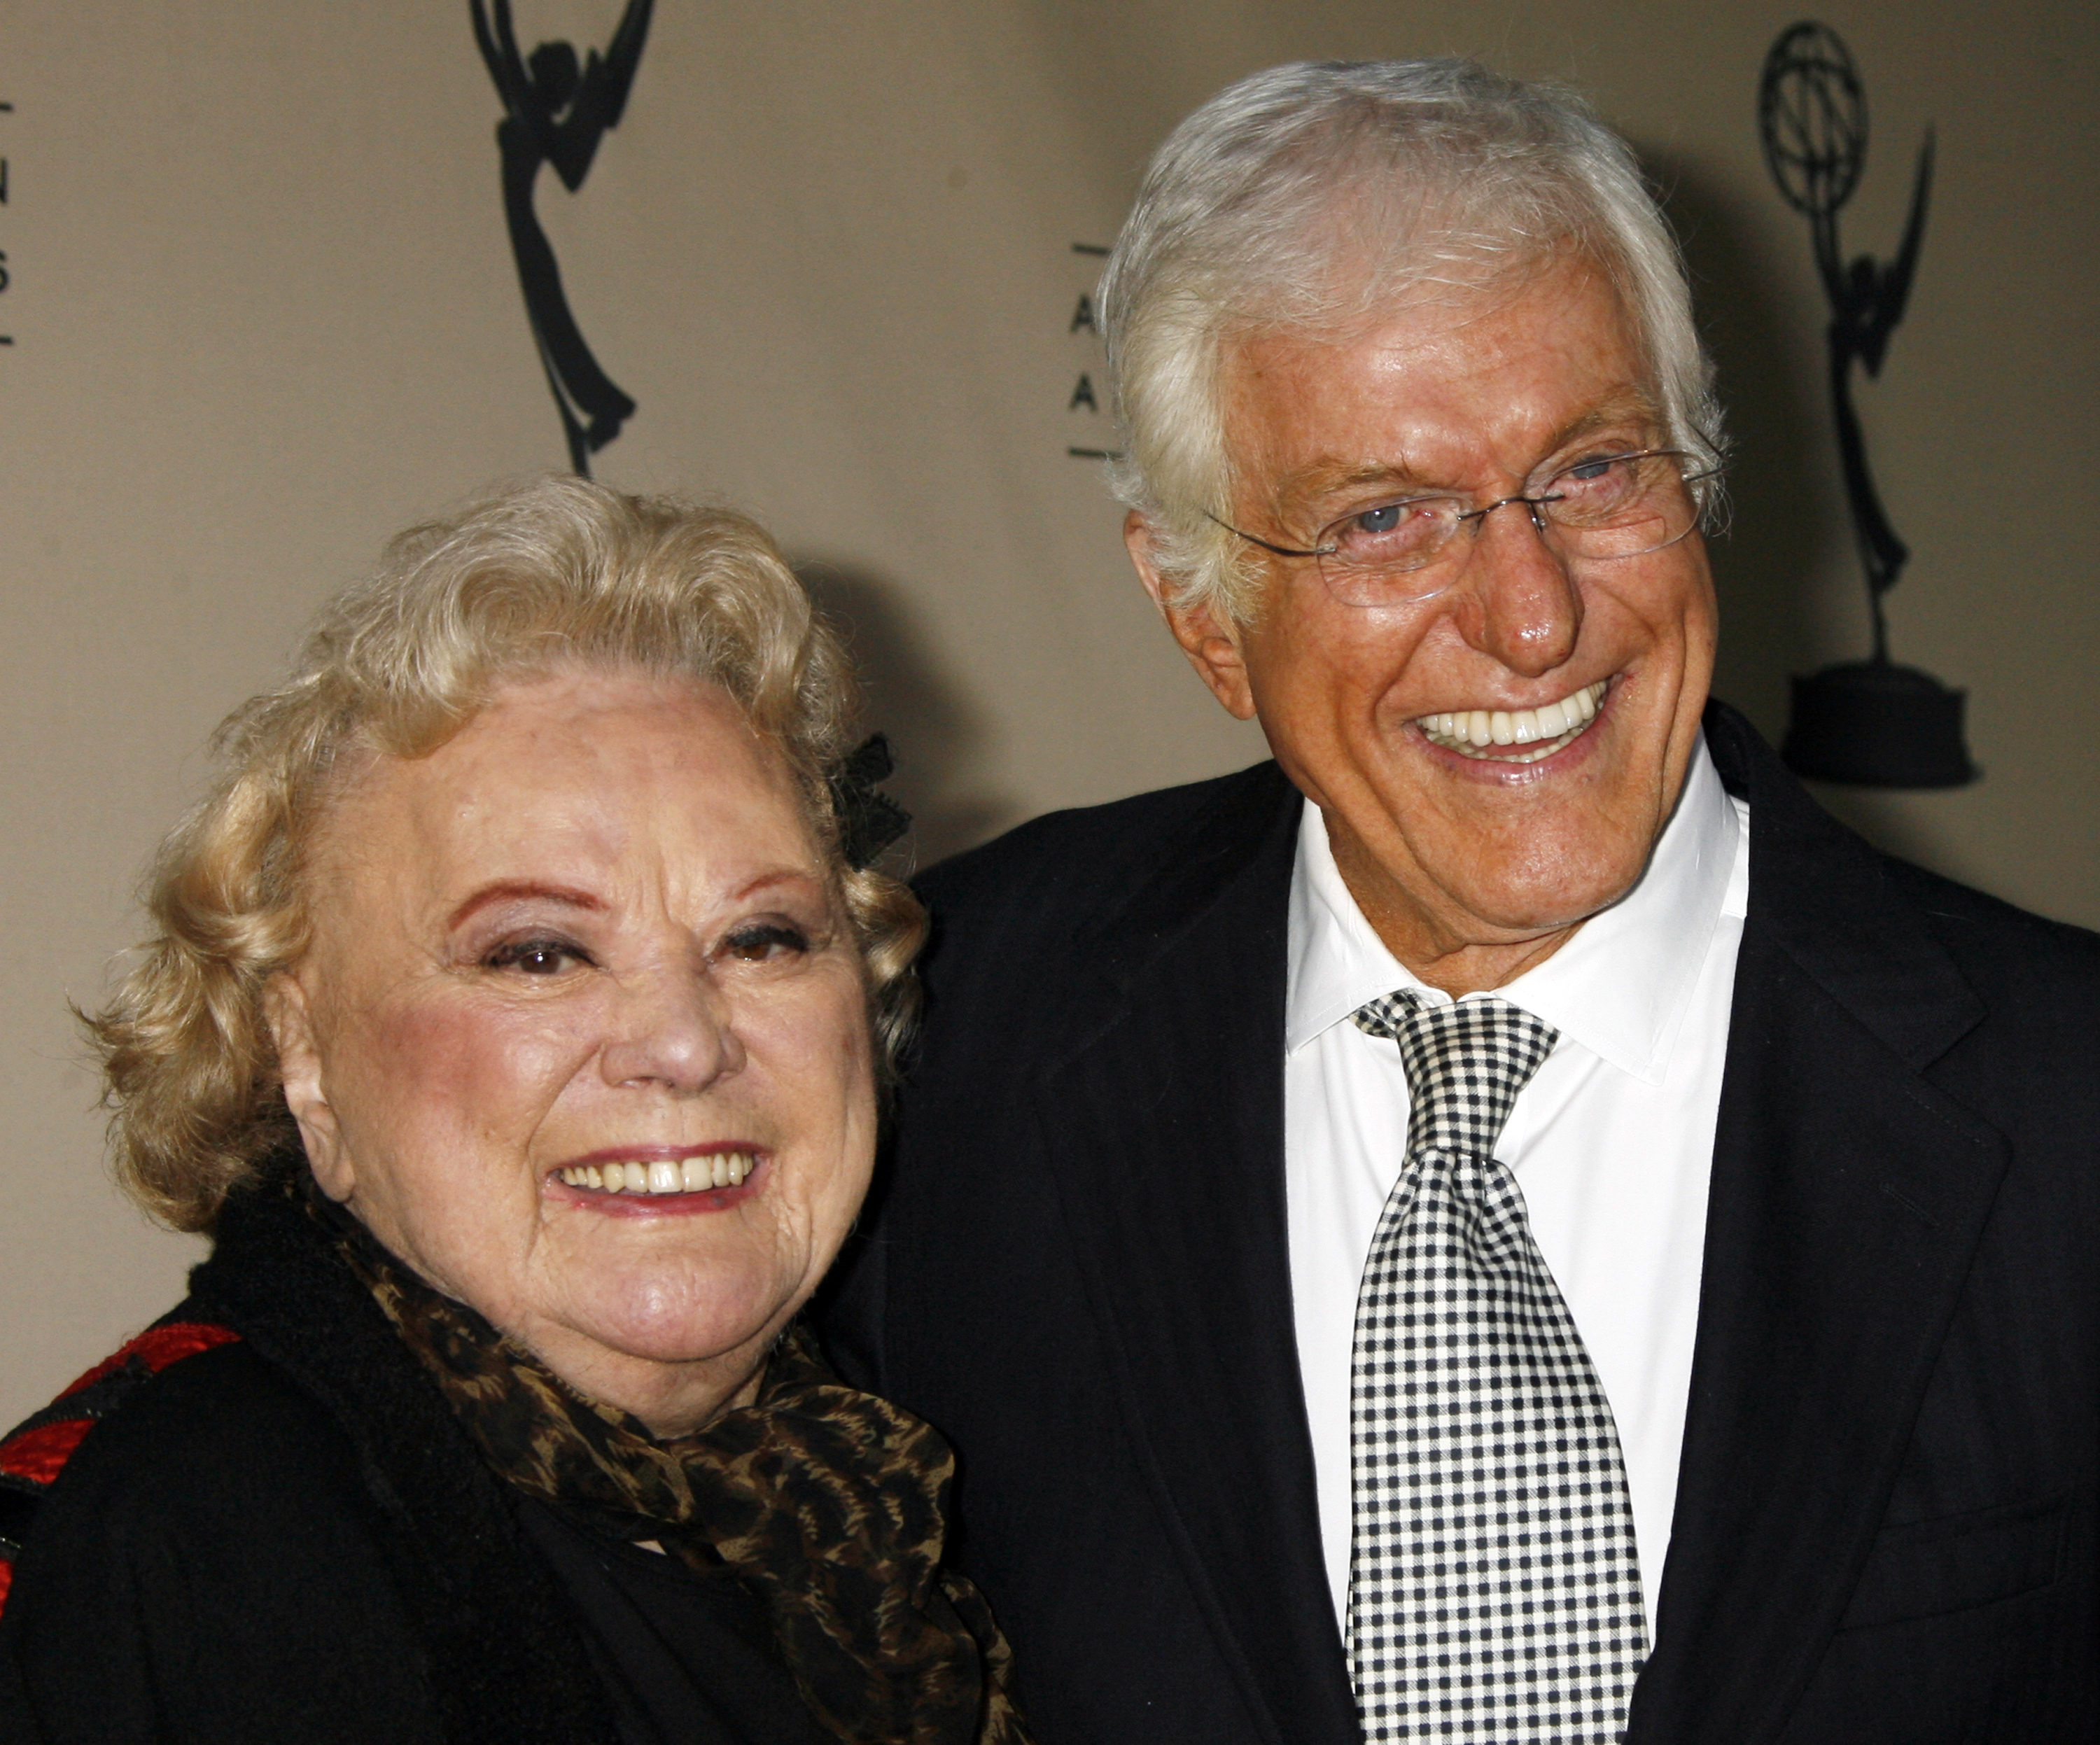 Actors Rose Marie and Dick Van Dyke, who starred in the 1960s television comedy series The Dick Van Dyke Show, pose as they arrive at the Academy of Television Arts & Sciences in Los Angeles in 2006.